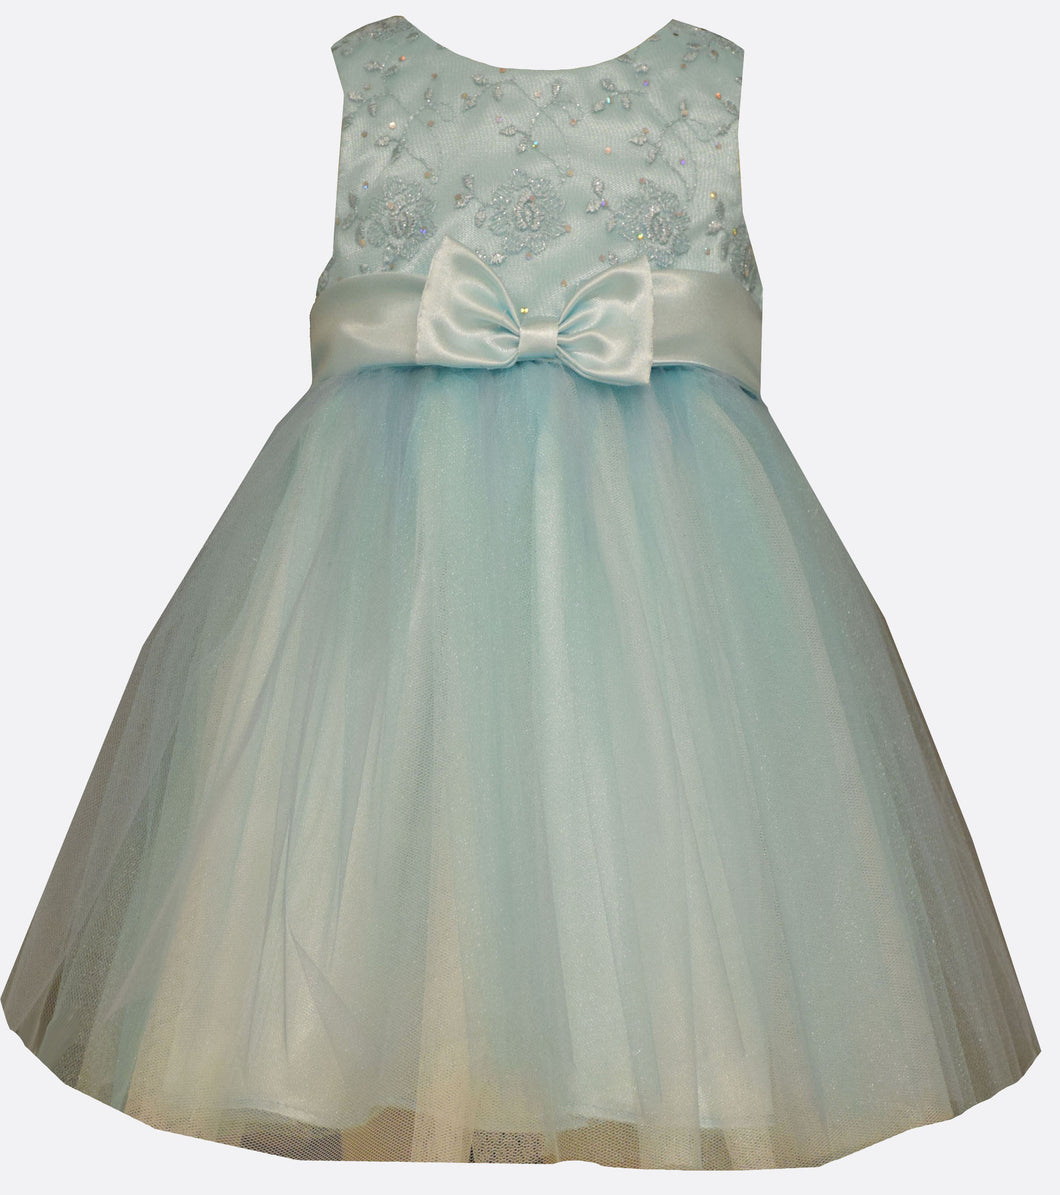 Bonnie Jean Turquoise Ballerina Dress